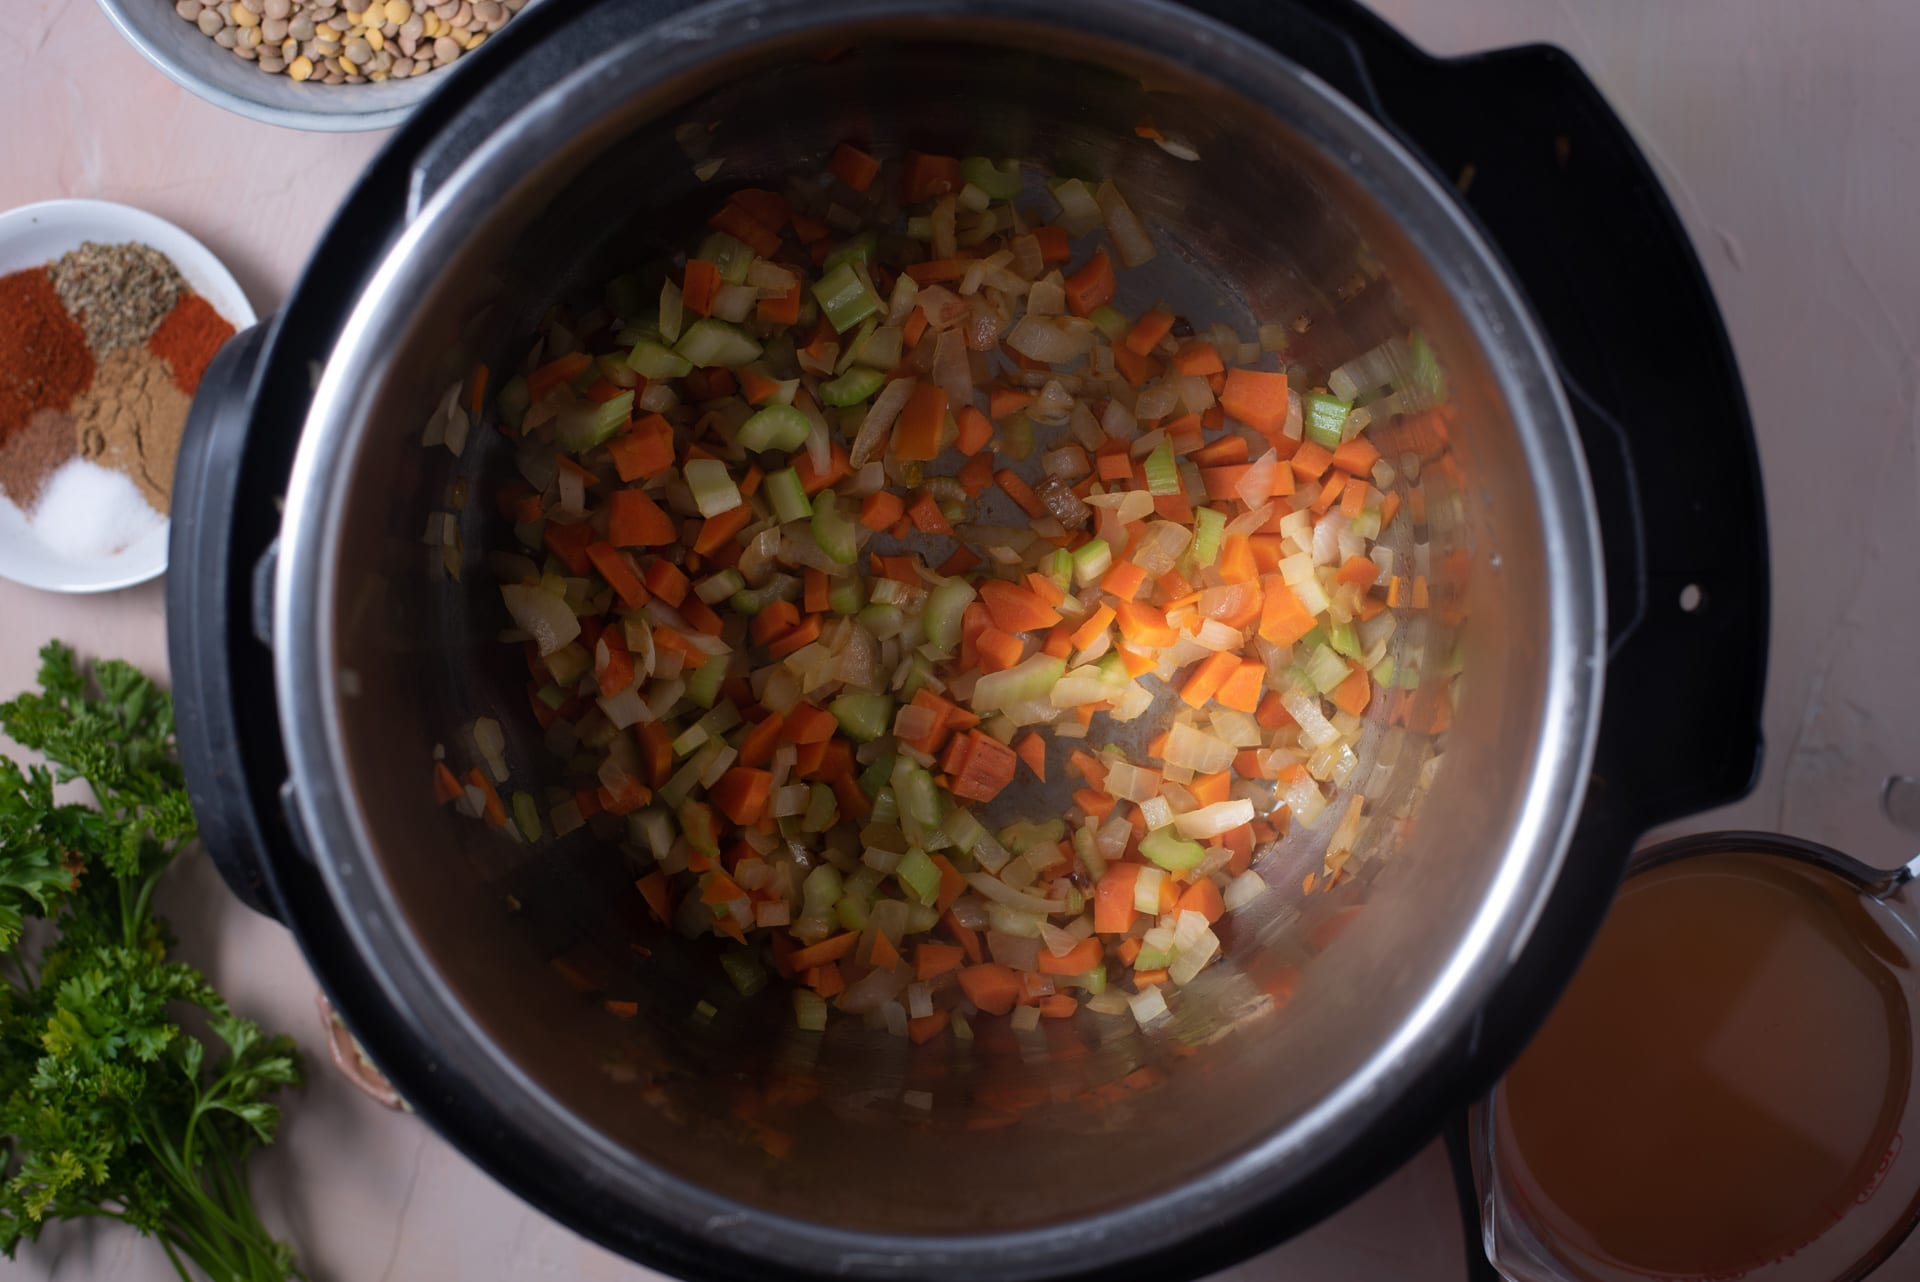 Overhead view of onion, carrot and celery in Instant Pot